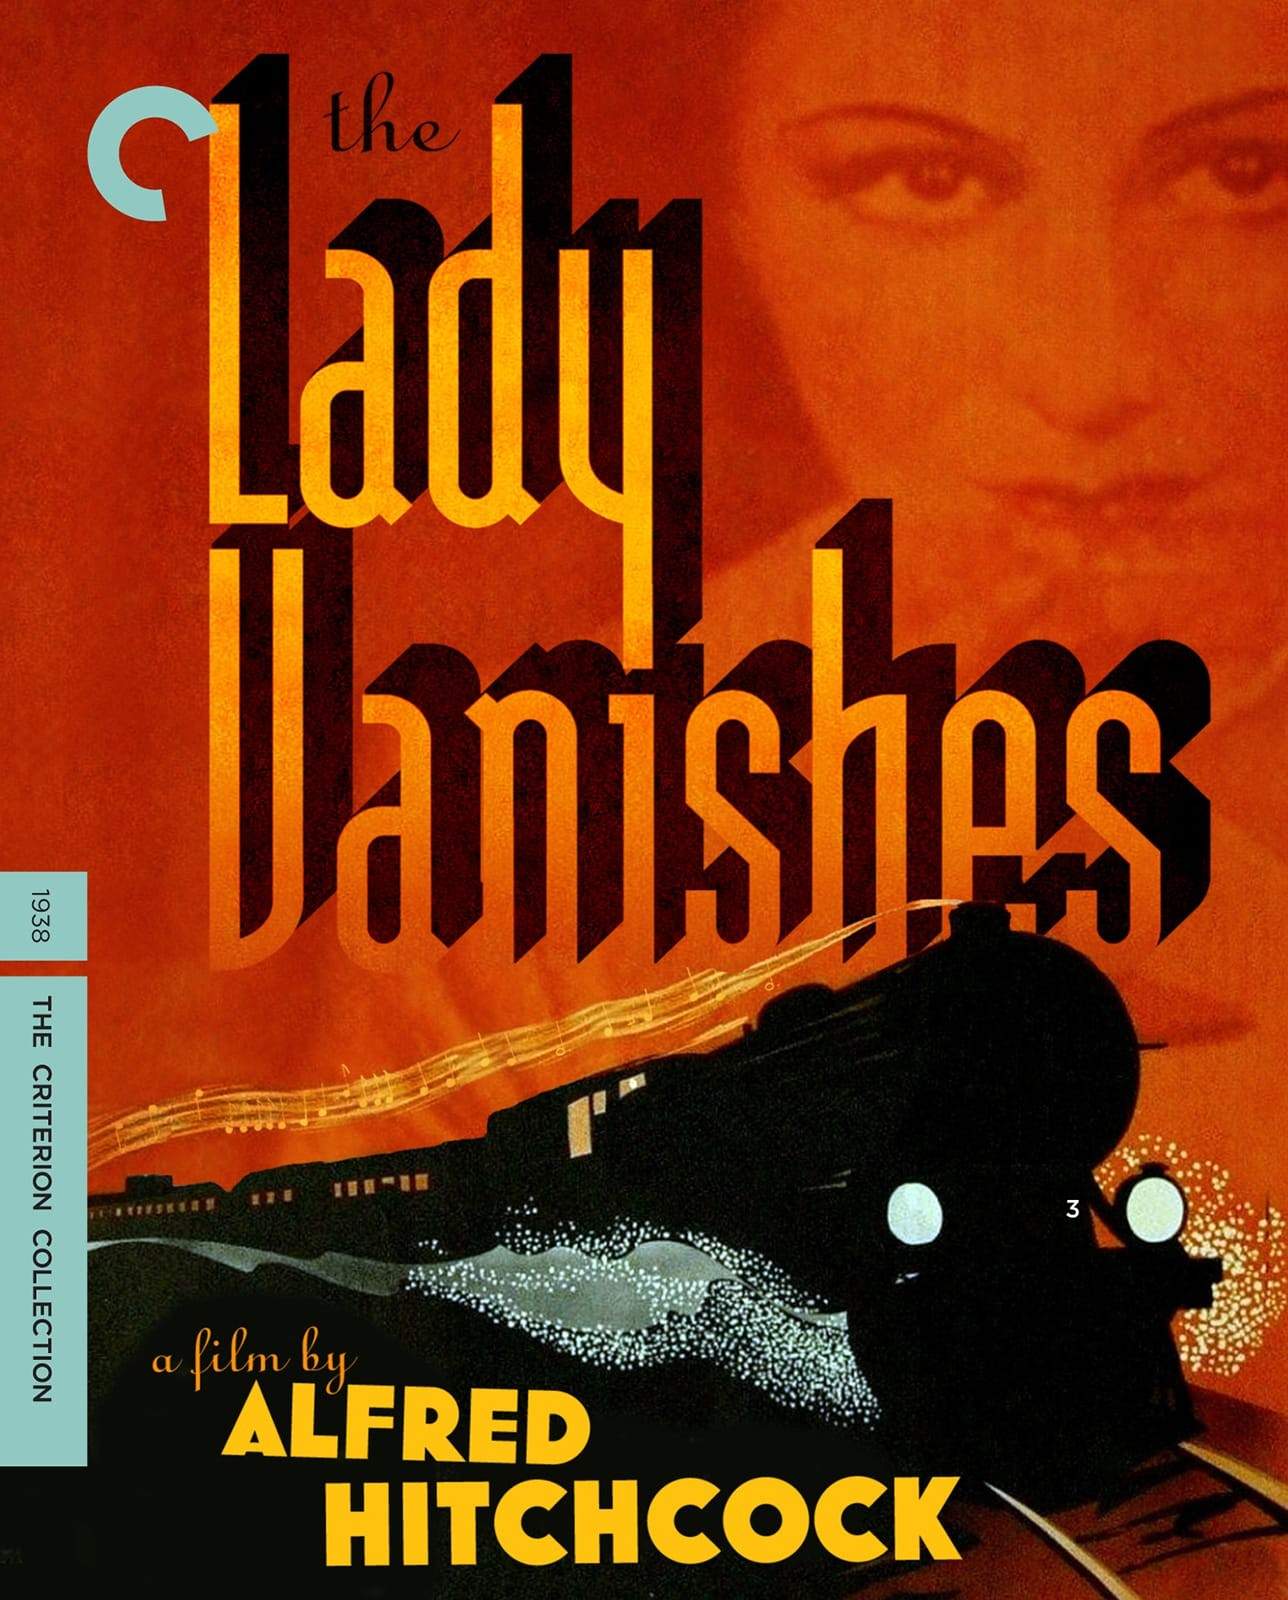 Image result for the lady vanishes criterion